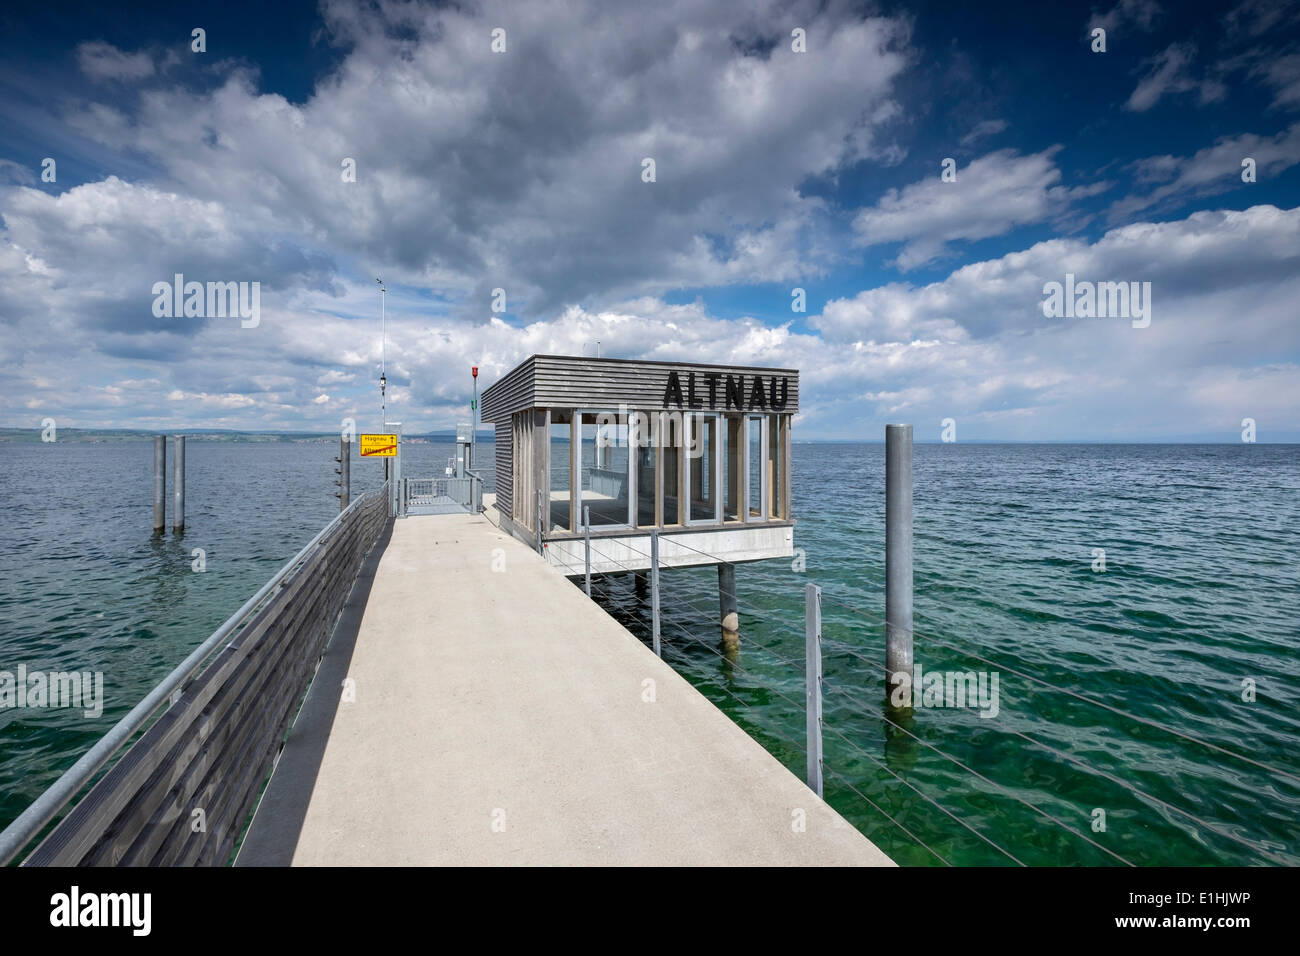 Pier with shelter at Lake Constance, Altnau, Canton of Thurgau, Switzerland - Stock Image